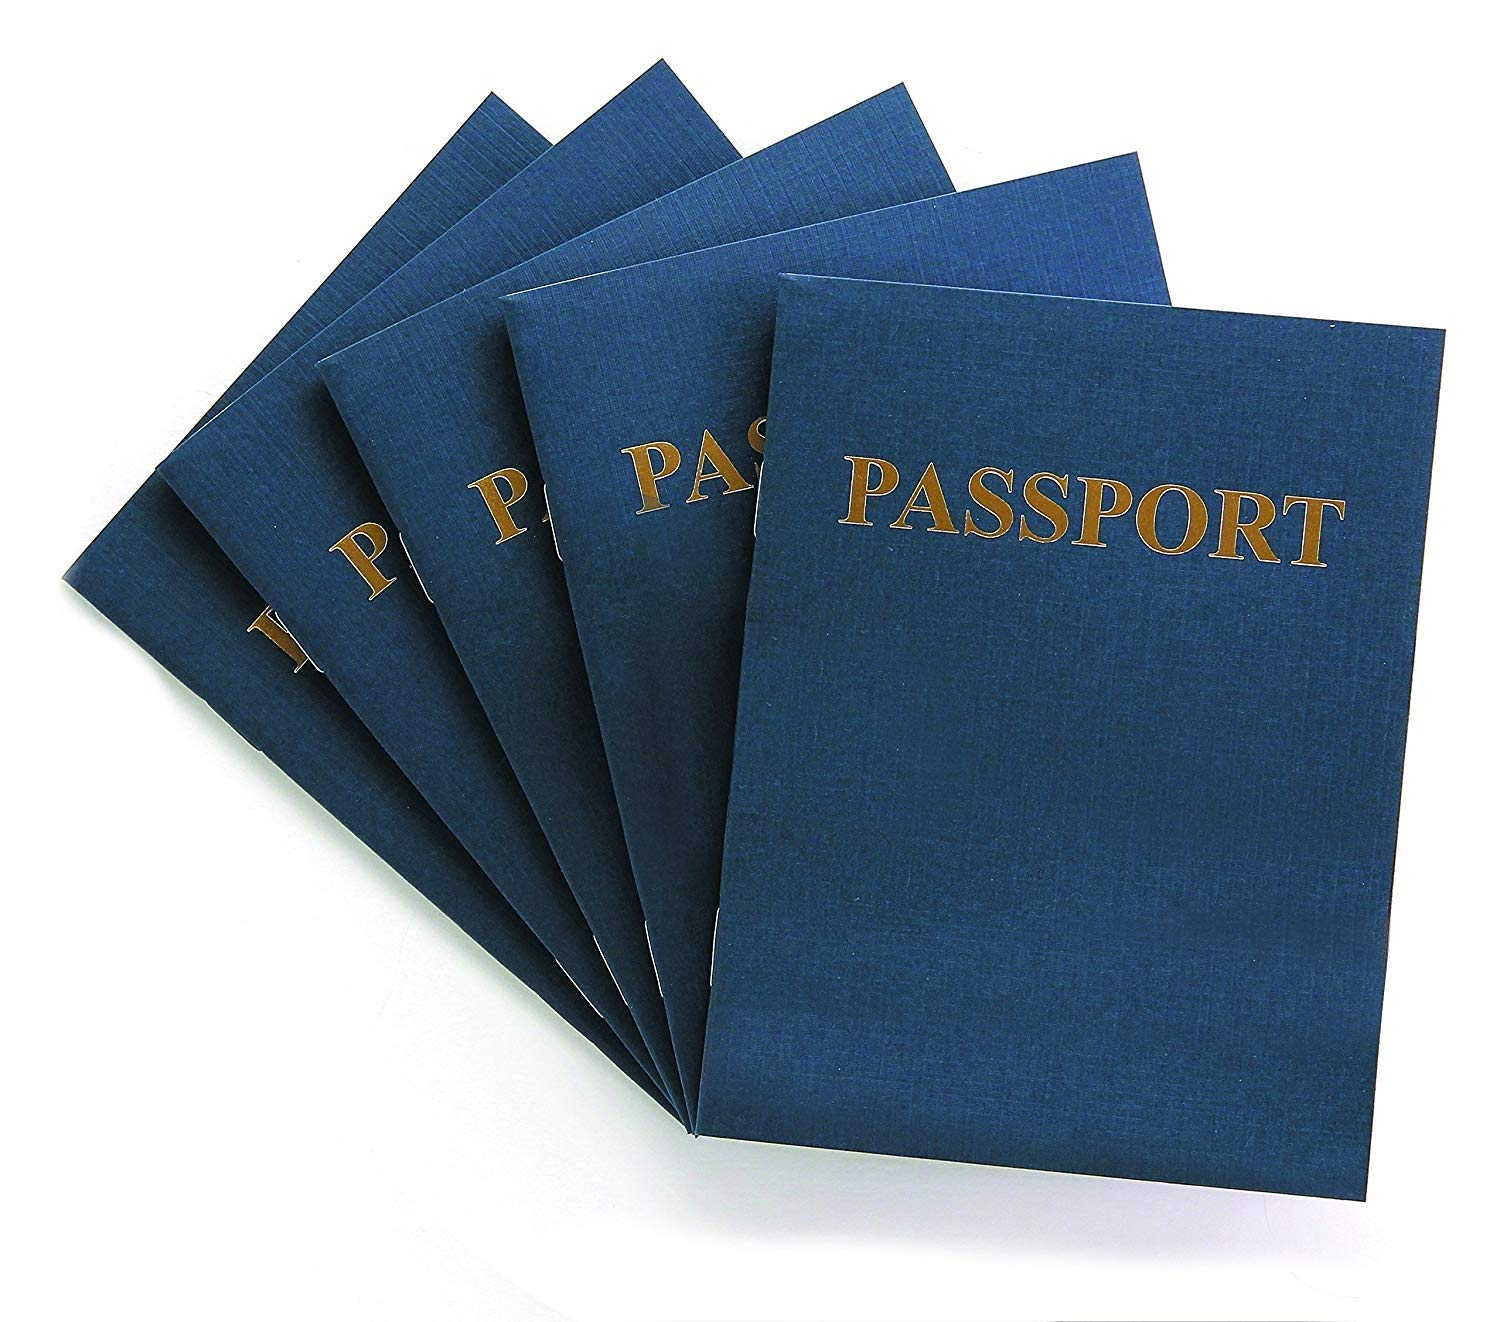 Hygloss Products Blank Passport Book - Fun Pretend Activity for Kids - Great for Classrooms & Parties - Imaginary Travel - Little Travelers Pocket Journal - 24 Blank Pages - 4 ¼'' X 5 ½'' - Pack of 24 Books by Hygloss